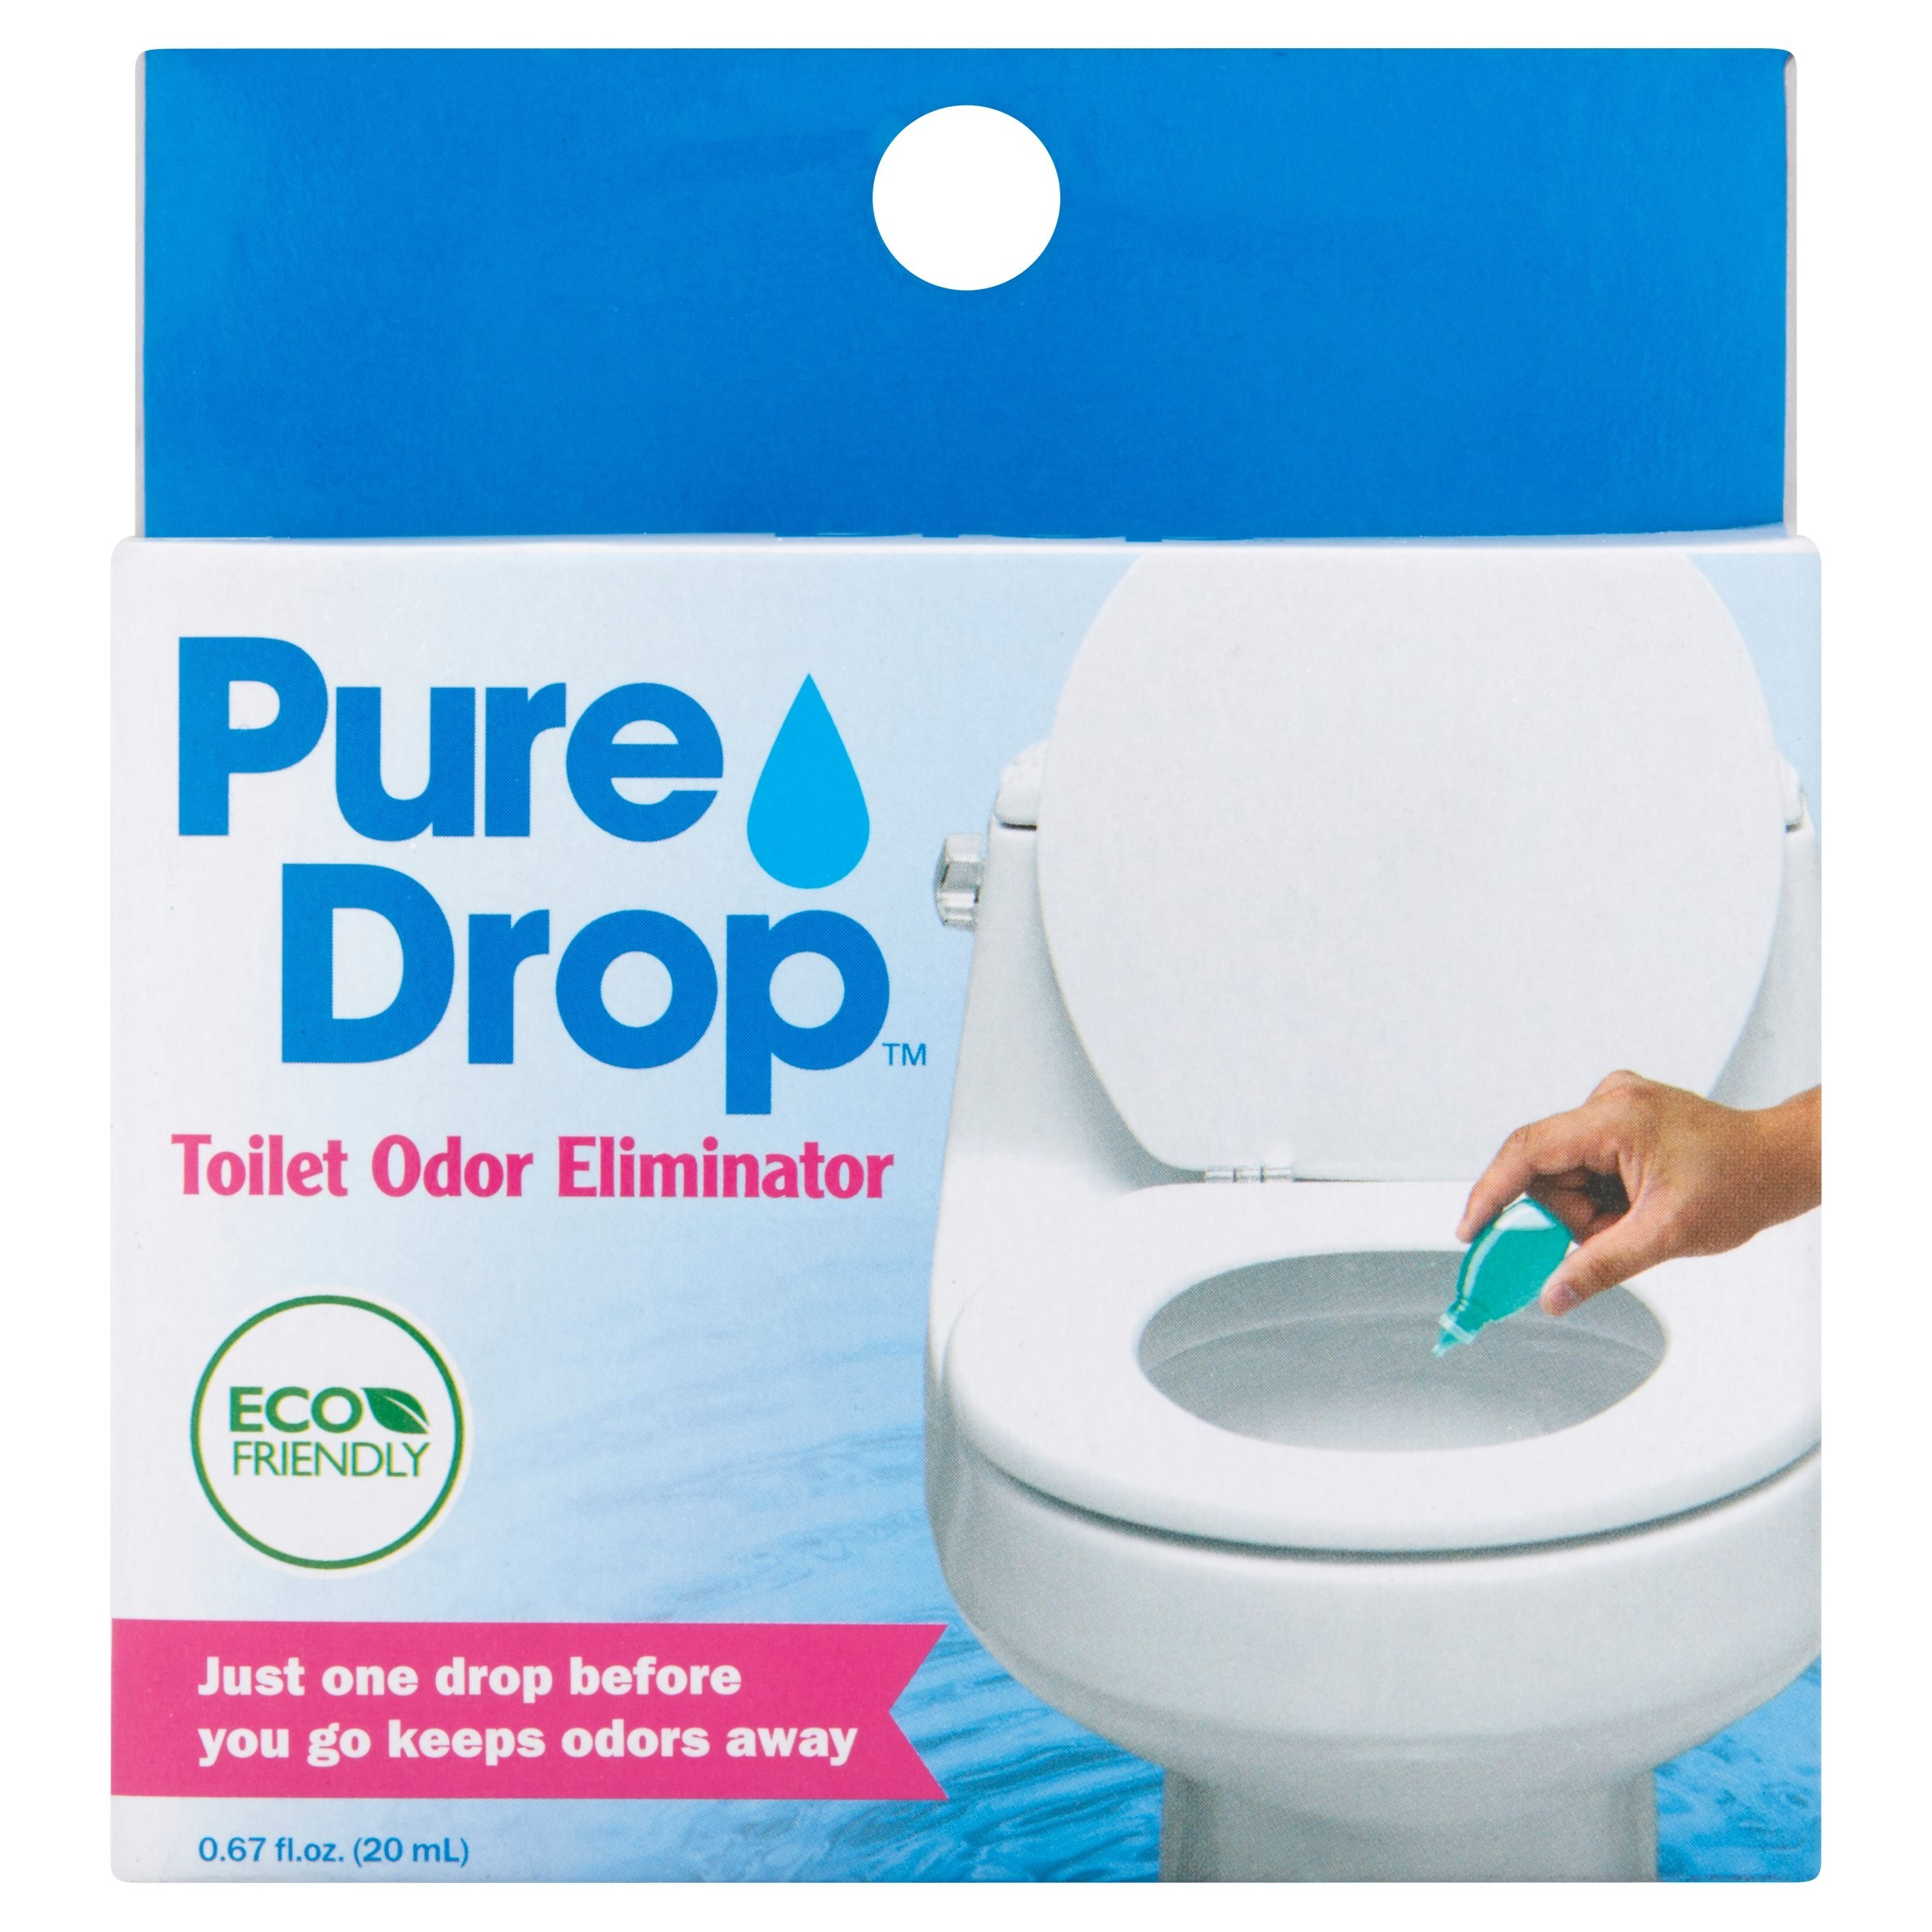 Bathroom Odor Eliminator Lovely Pure Drop toilet Odor Eliminator 0 Fl Oz Walmart Decoration